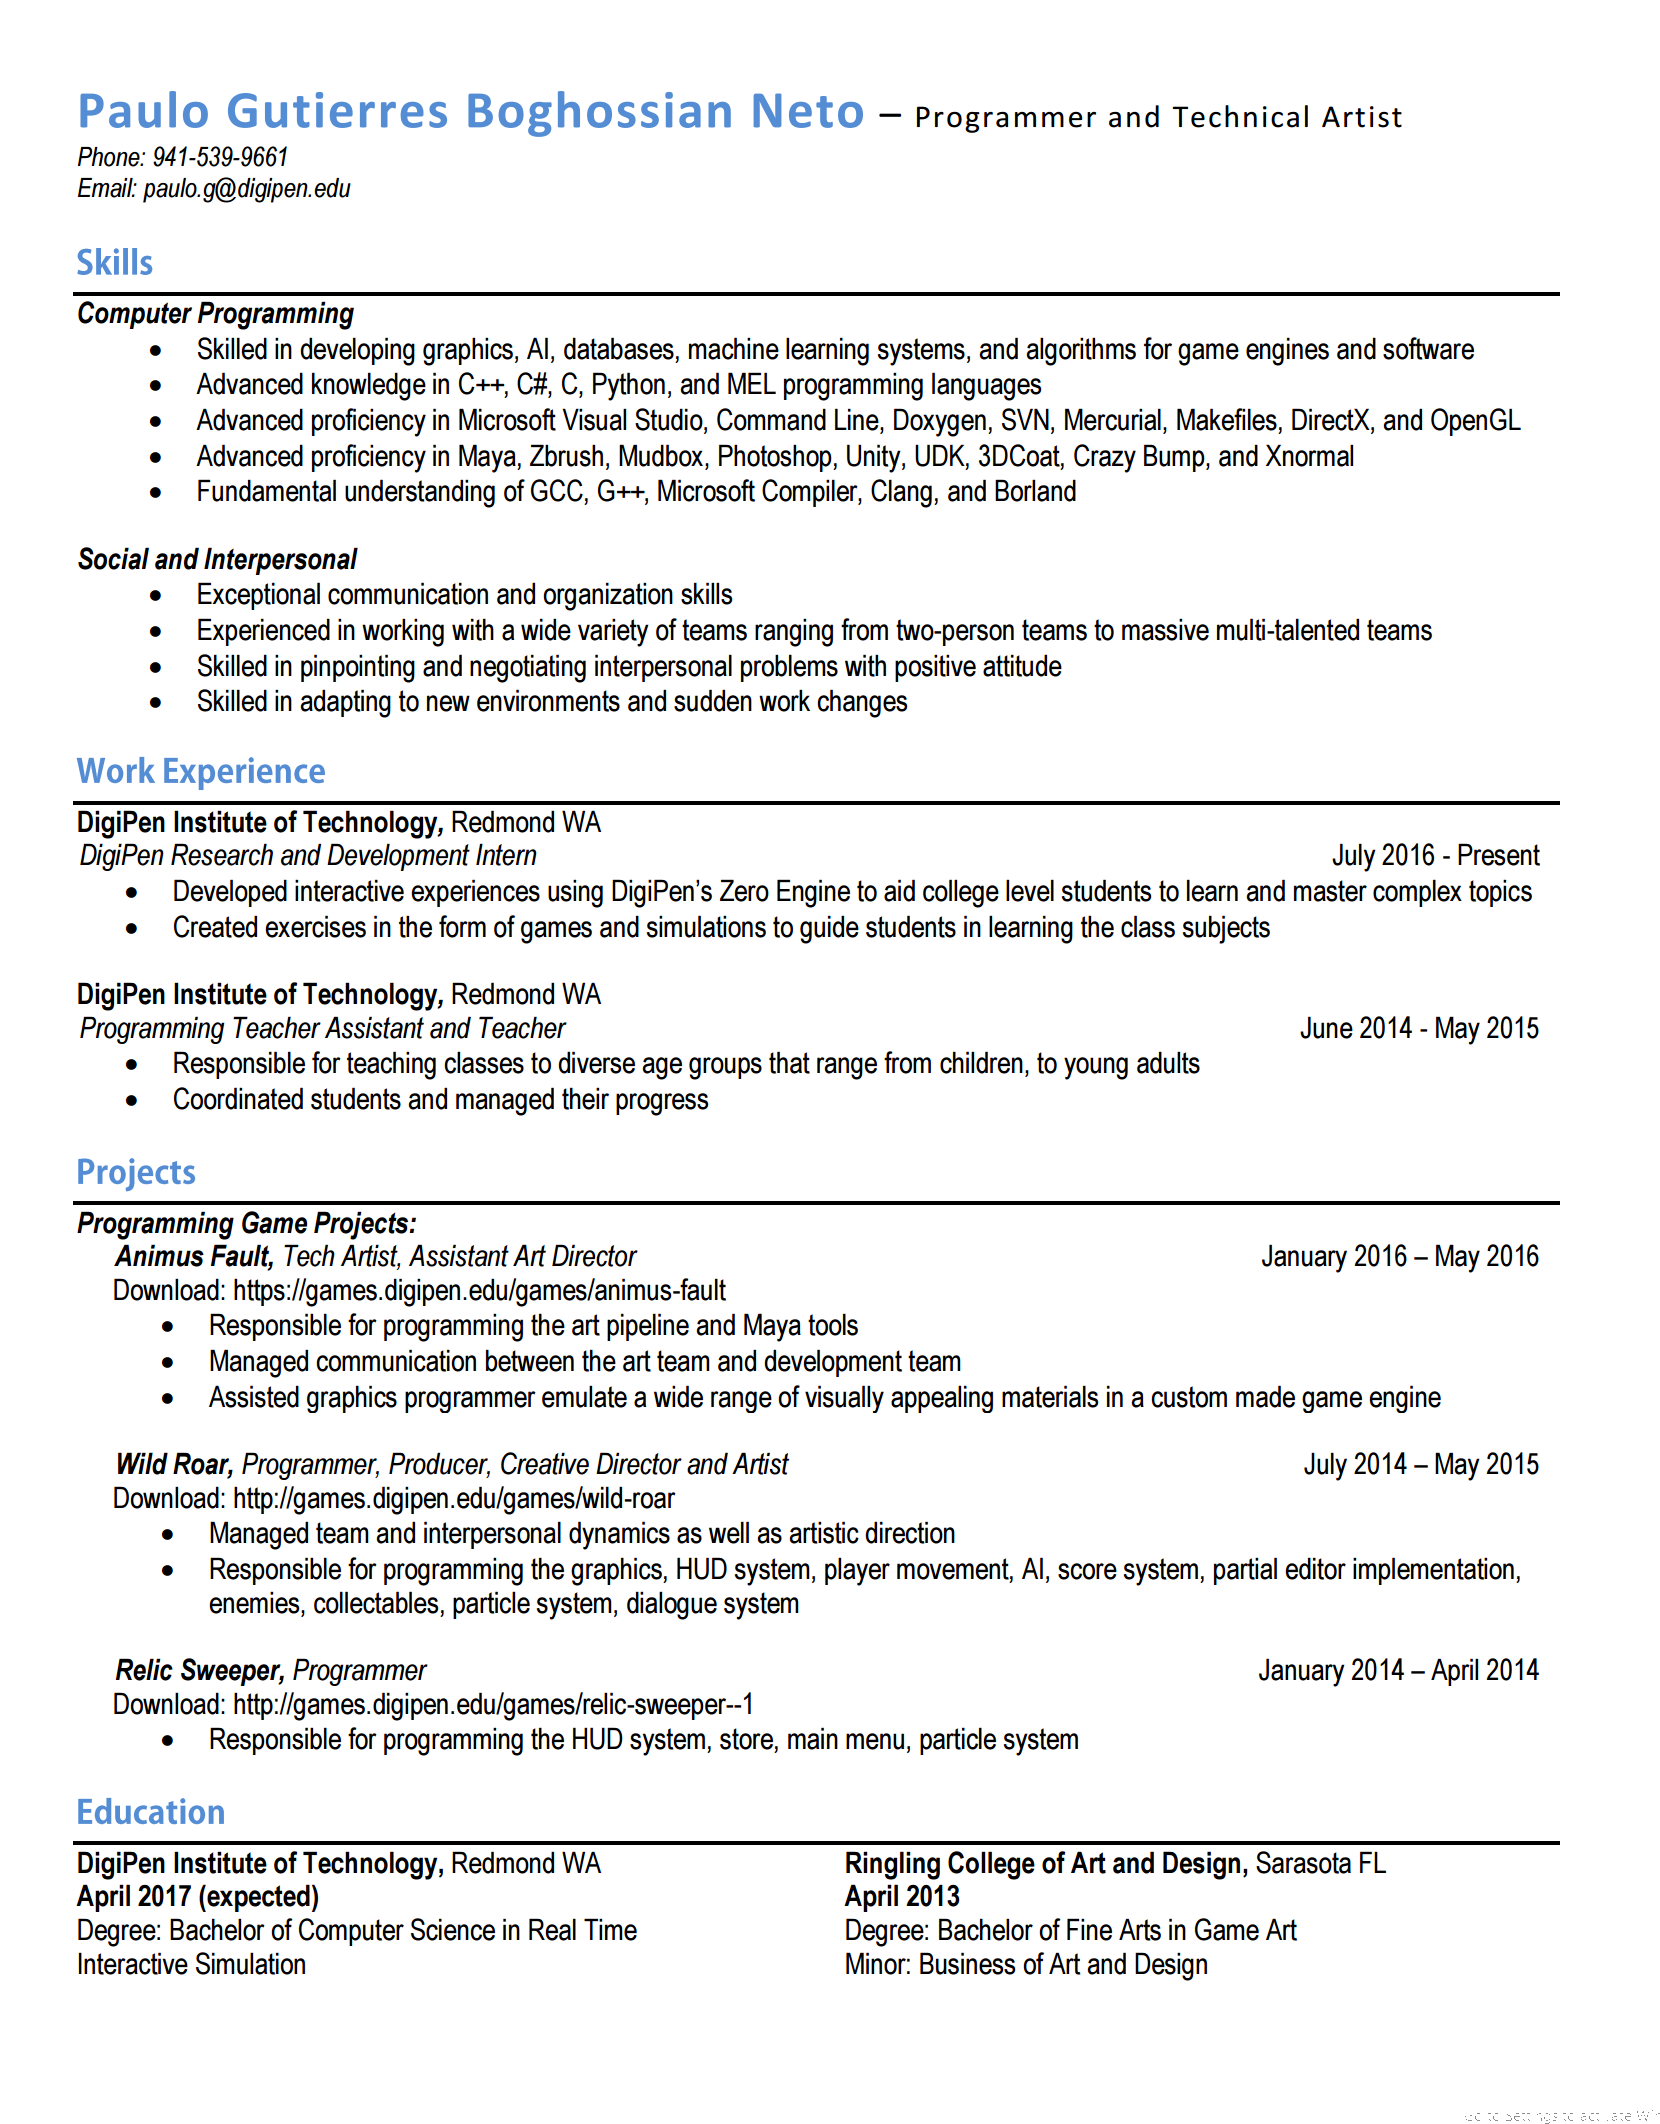 Resume Language Proficiency Resume resume language proficiency custom writing at 10 foreign programming computer programmer has some paragraphs